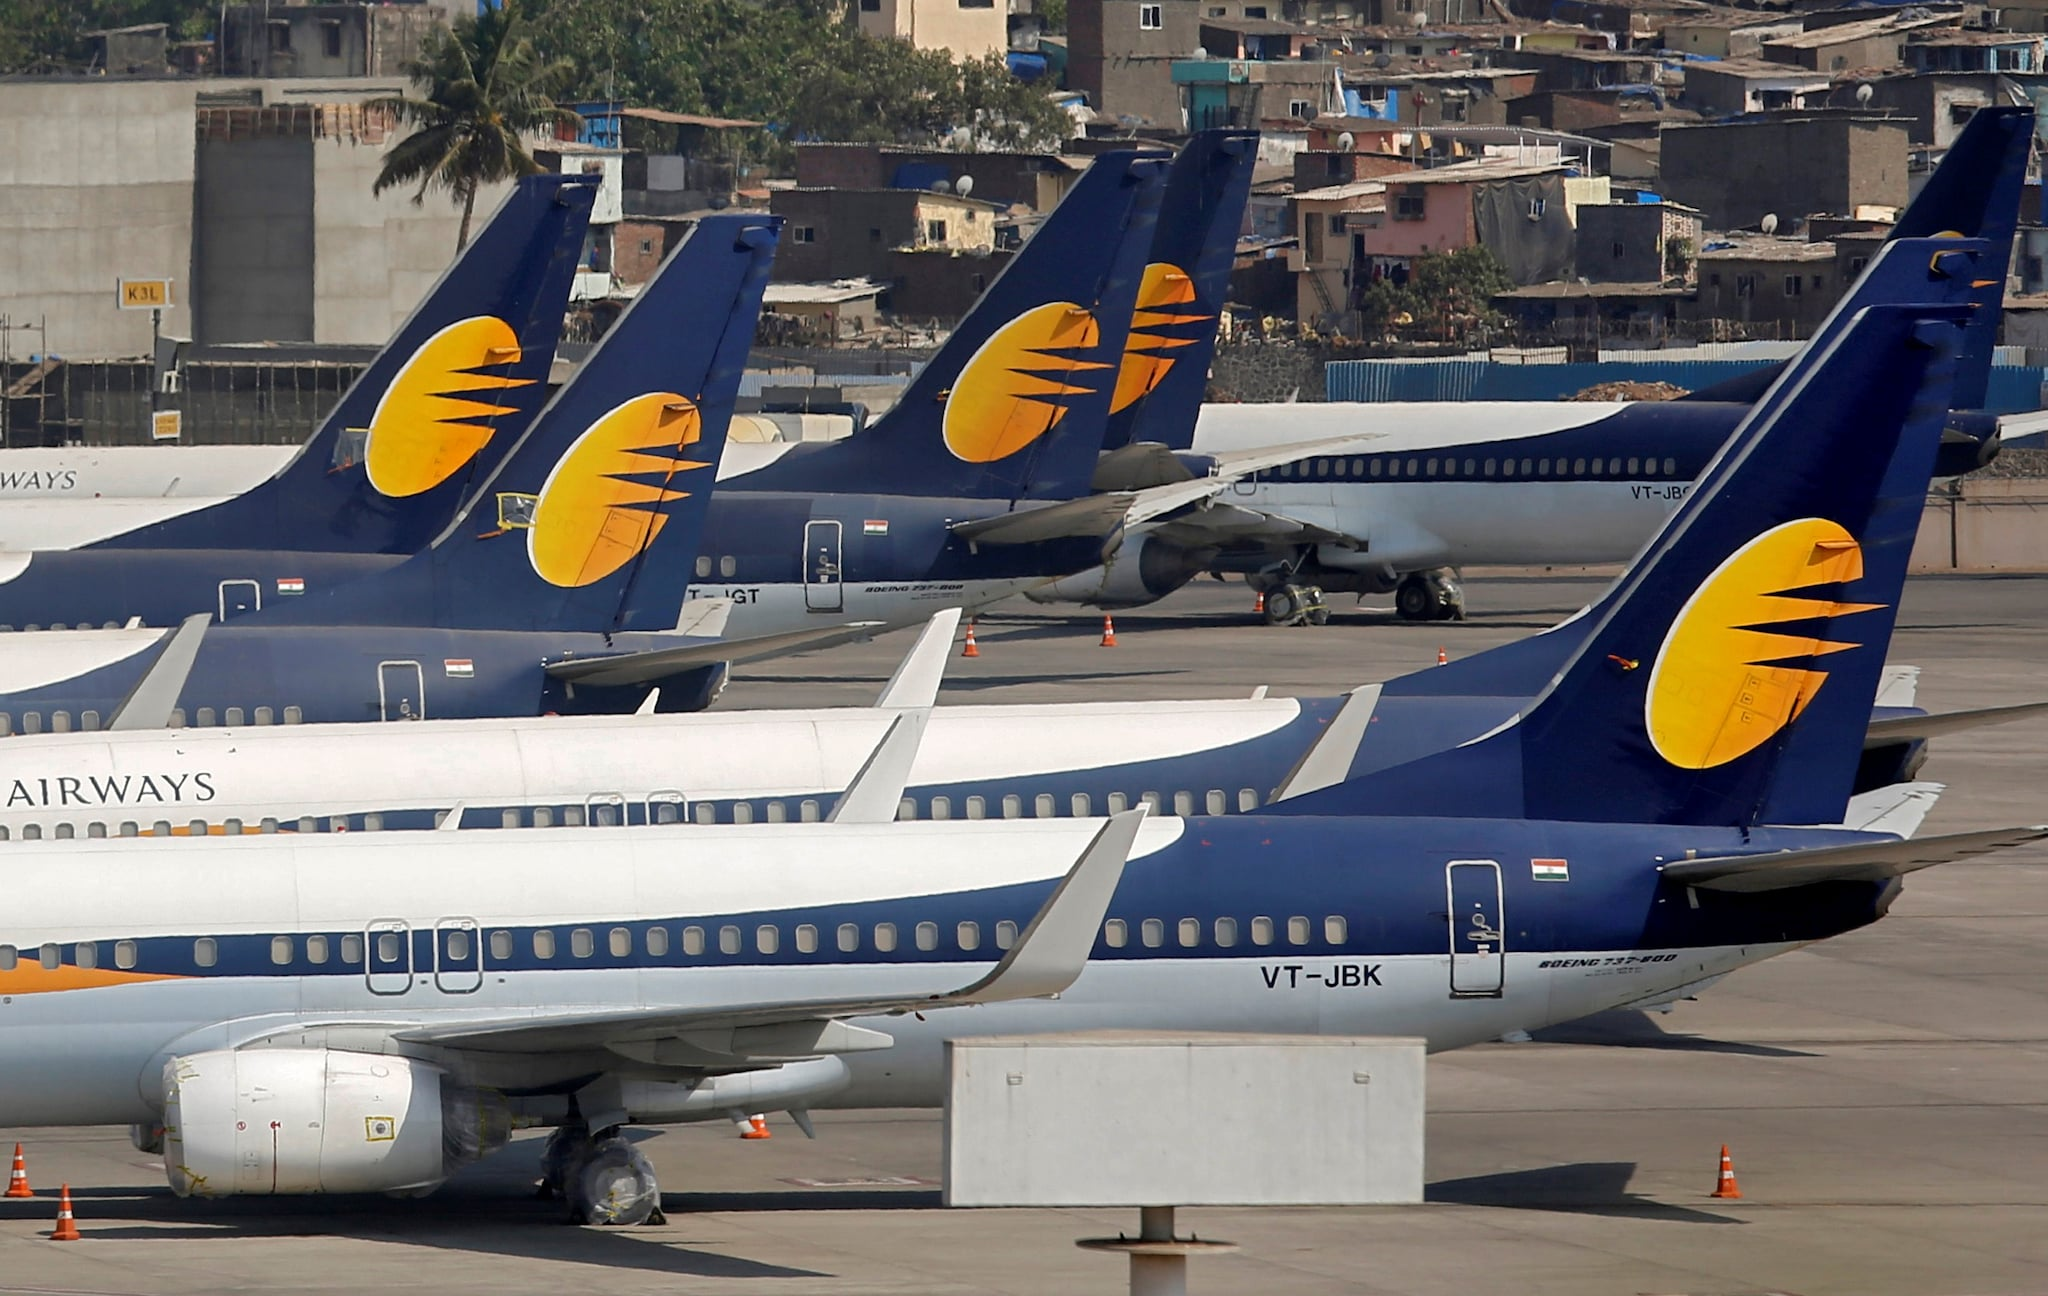 Jet Airways: A day after CNBC-TV18 reported billionaire Anil Agarwal's intention to acquire a stake in now-defunct Jet Airways, the businessman has made it clear he doesn't intend to pursue the deal. In a statement, Agarwal said,